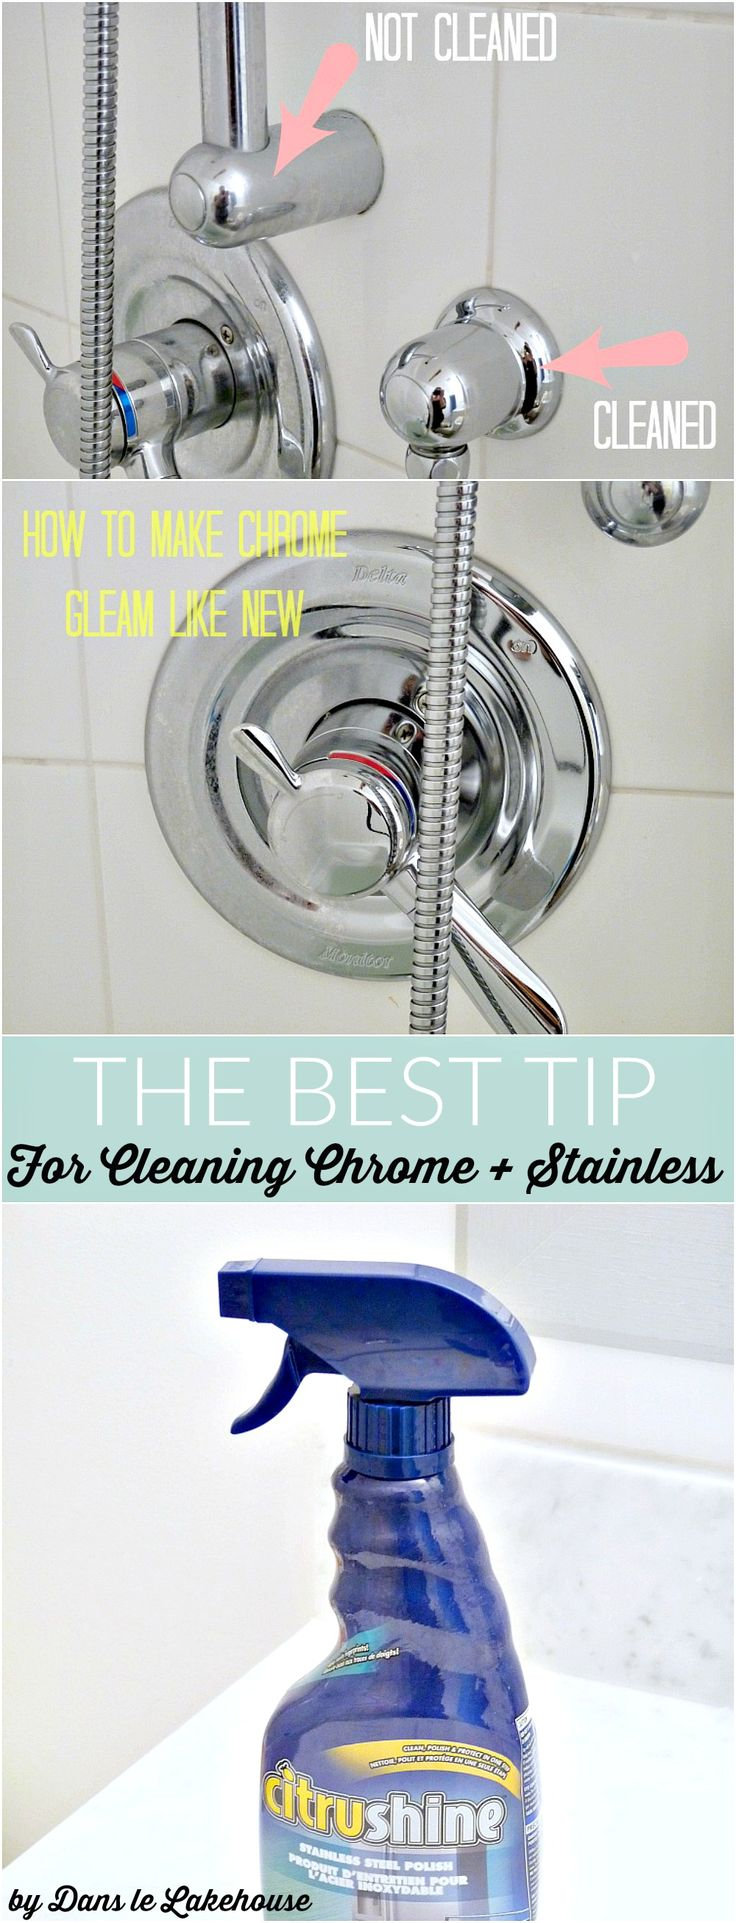 How to clean chrome and stainless faucets and sinks - and keep them from developing water spots! Citrushine product review.